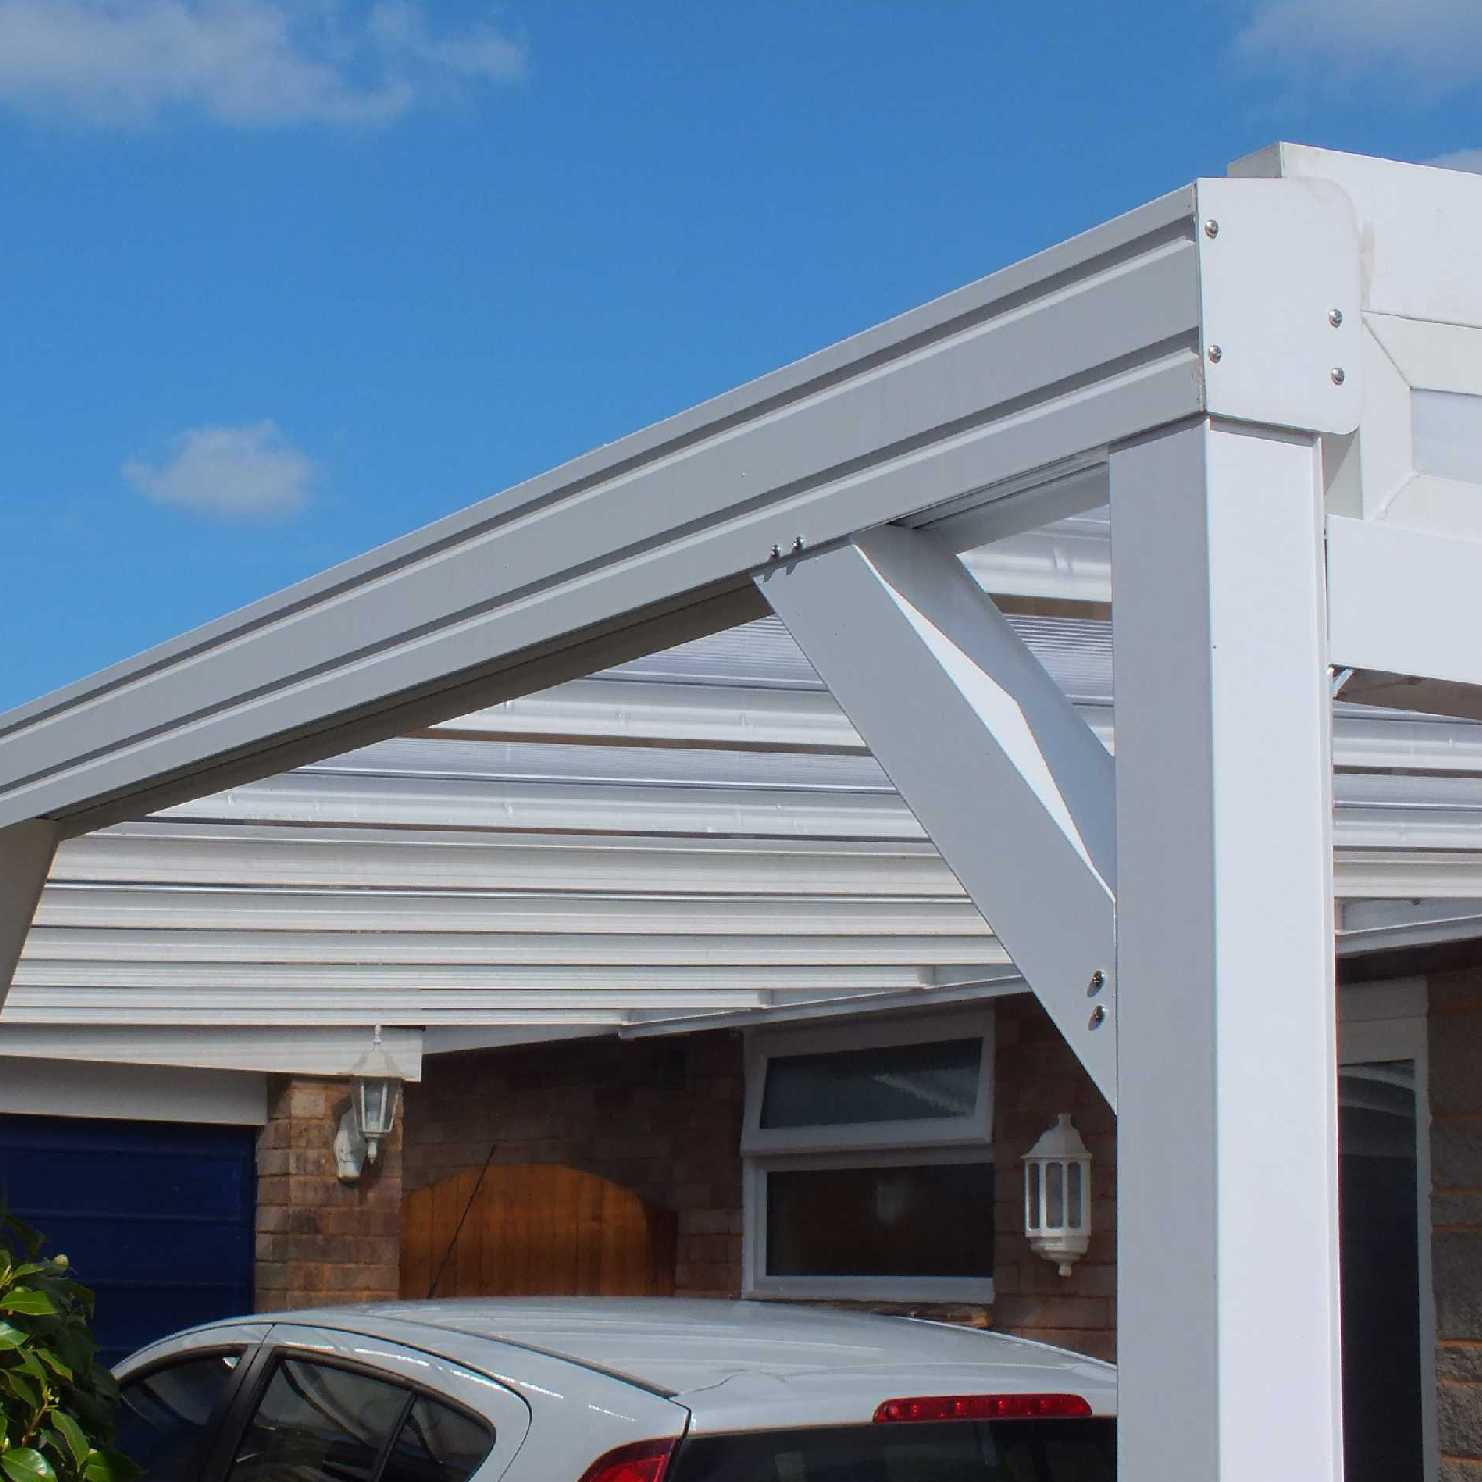 Buy Omega Smart White Lean-To Canopy with 16mm Polycarbonate Glazing - 10.6m (W) x 3.5m (P), (5) Supporting Posts online today